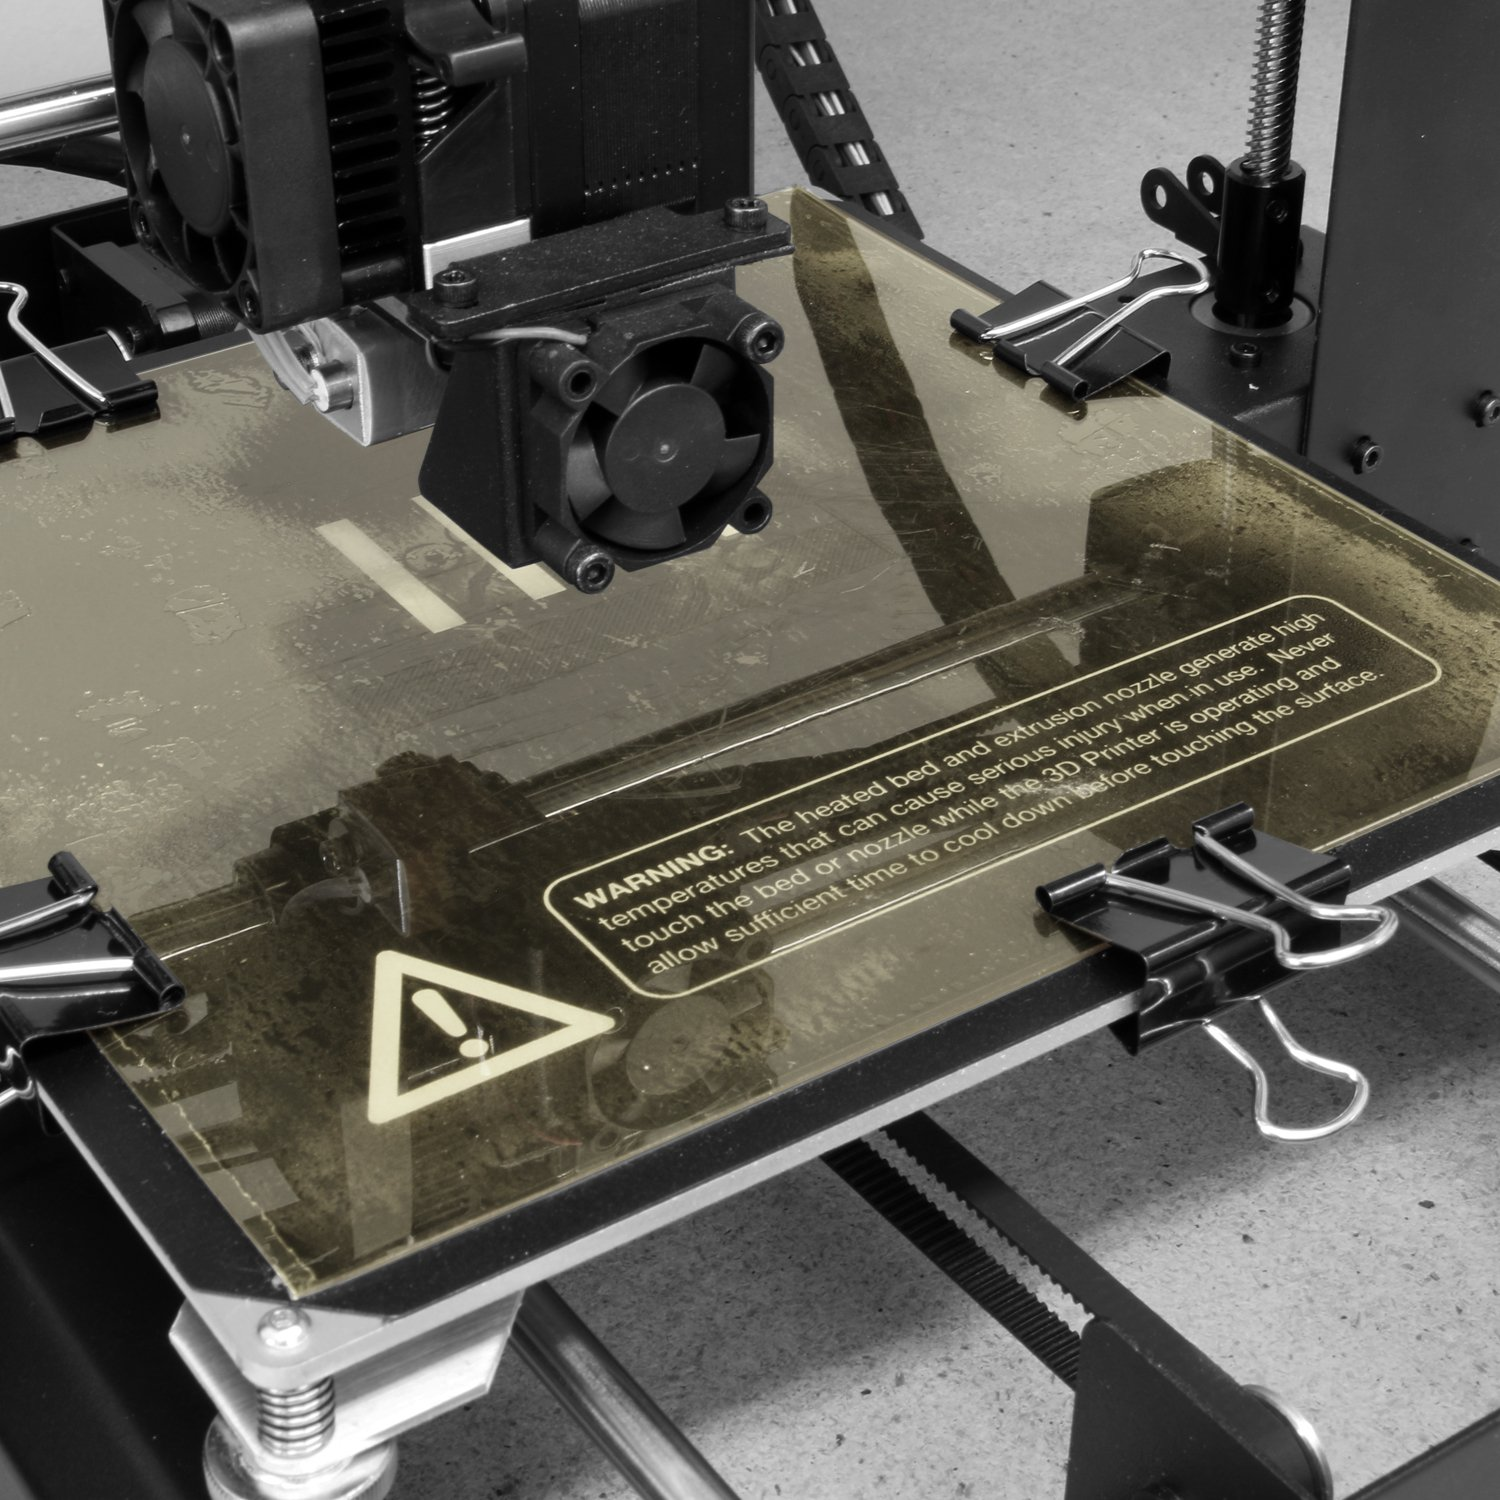 Made in The USA 1mm Thick 3D Printer Build Surface with 3M 468MP Adhesive Gizmo Dorks PEI Sheet 8 x 8 203mm x 203mm